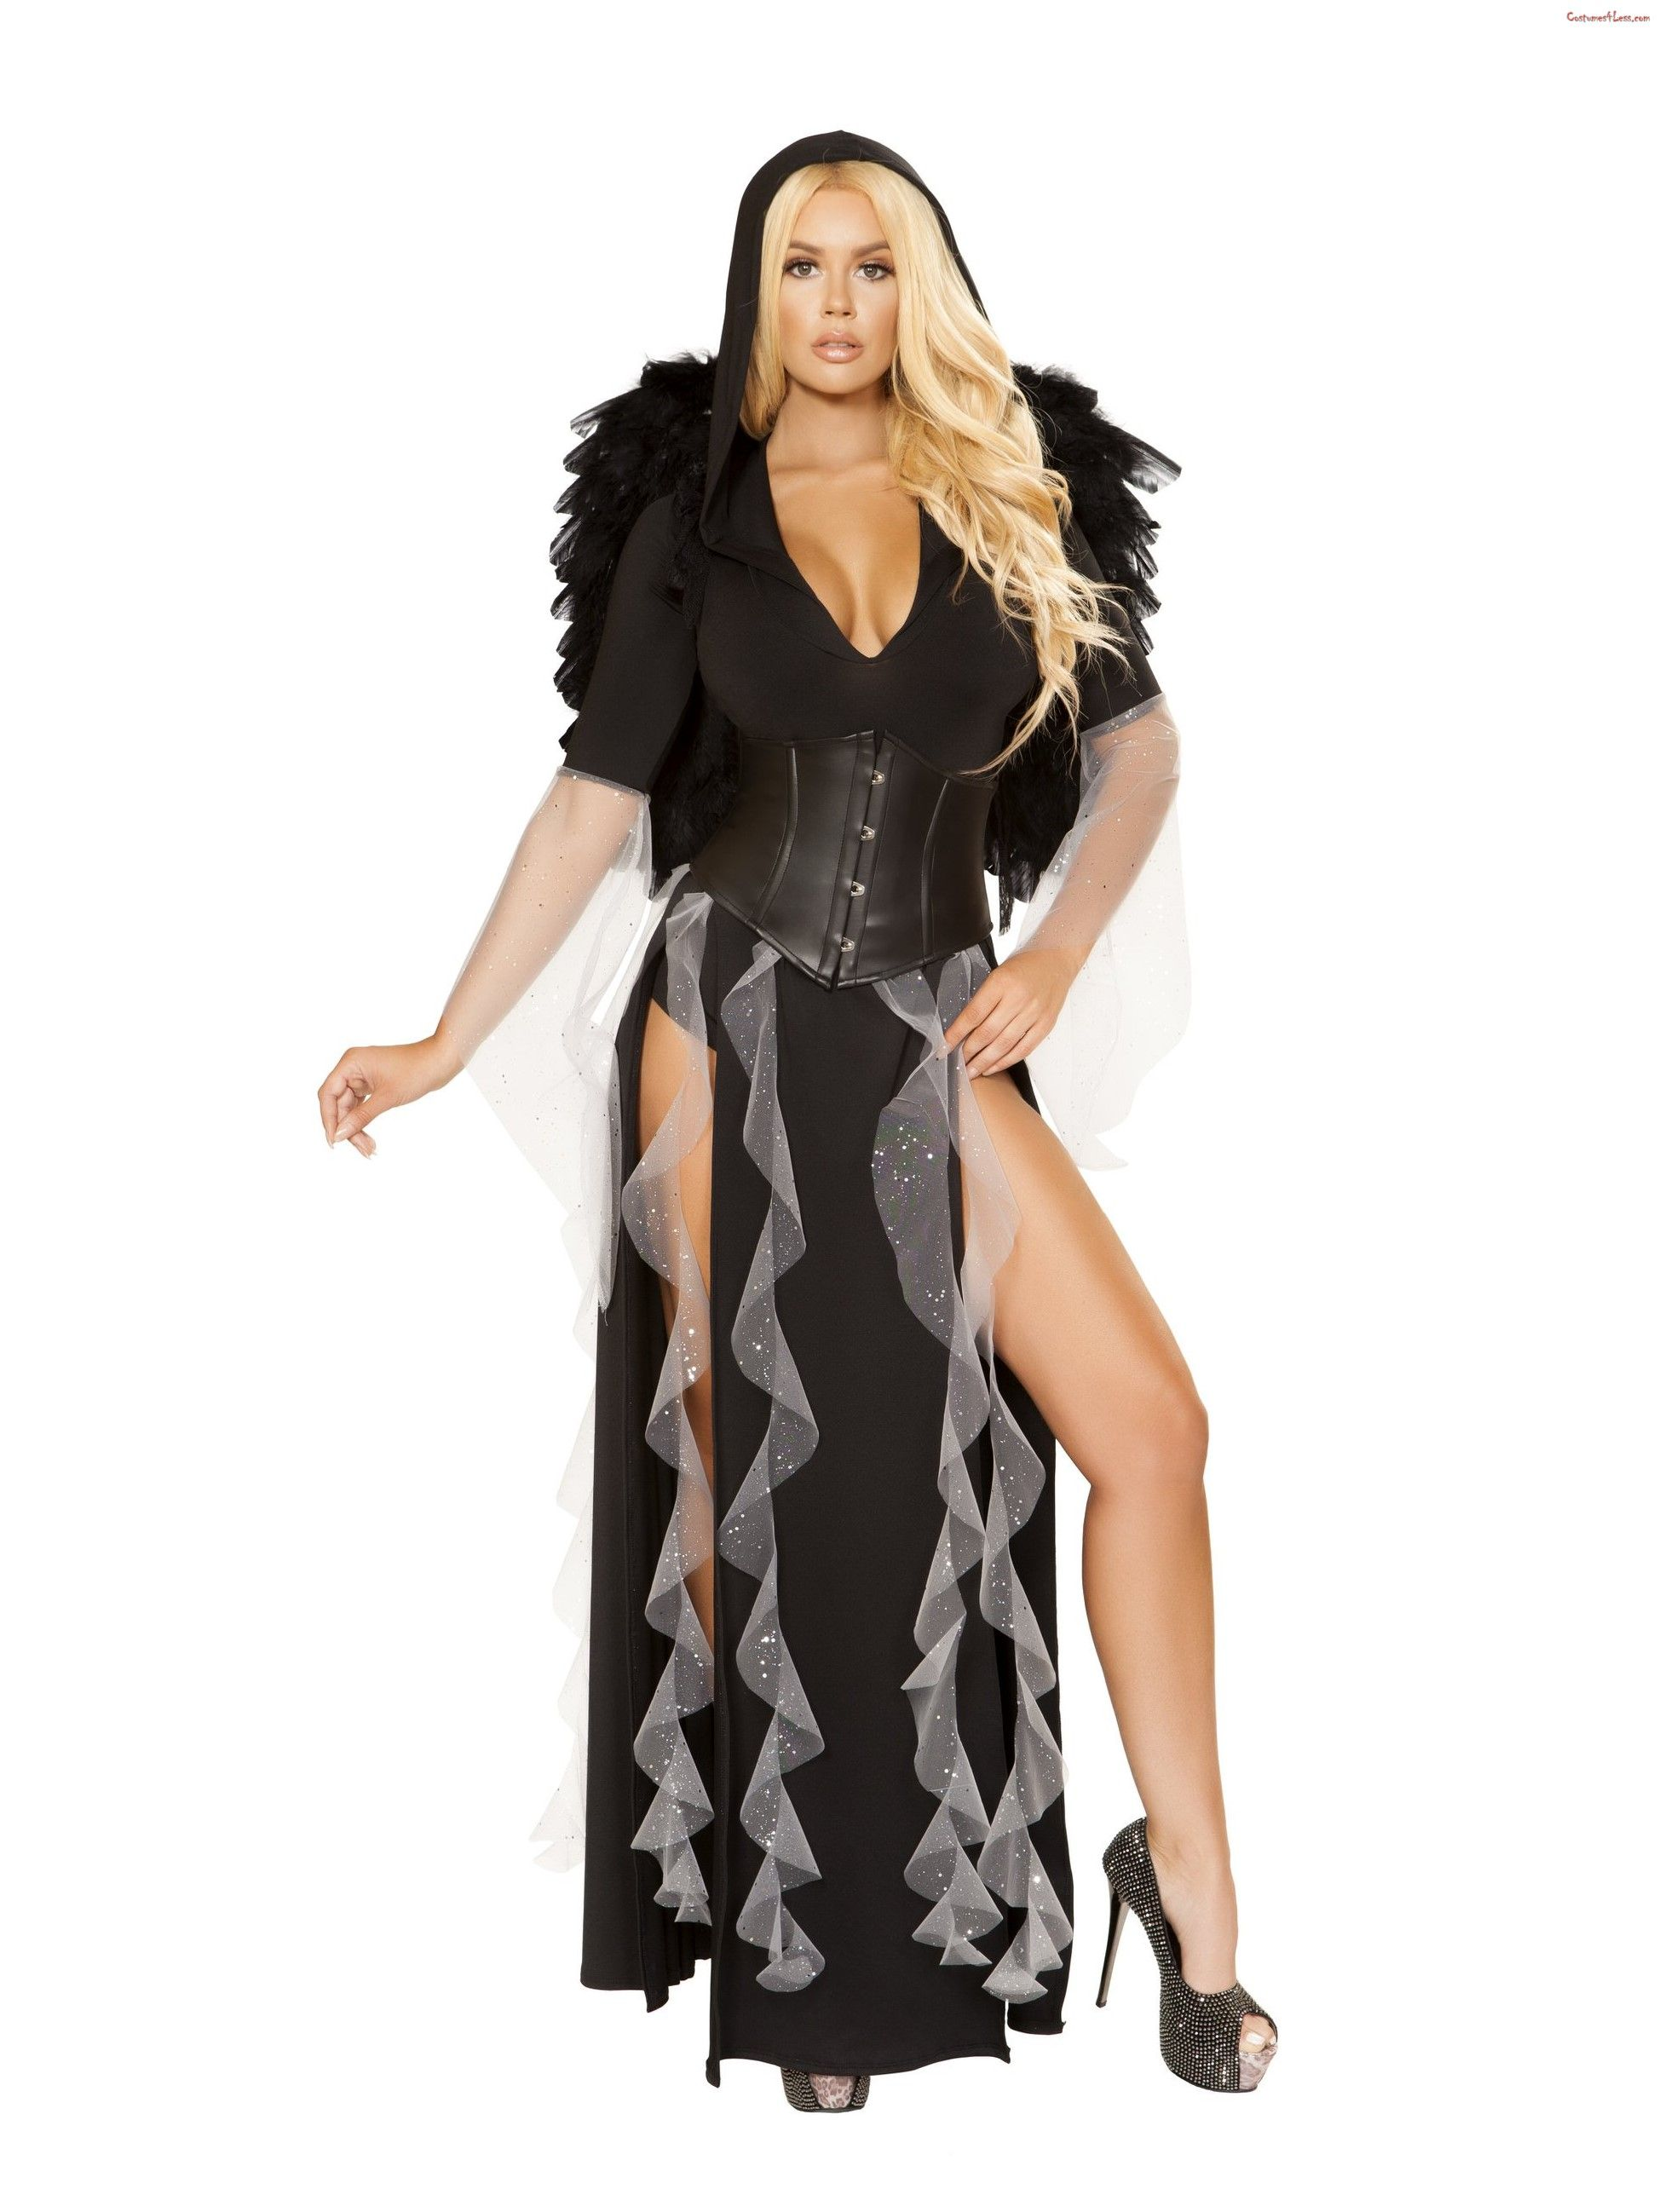 3pc midnight angel costume#midnight, #pc, #costume | high fashion